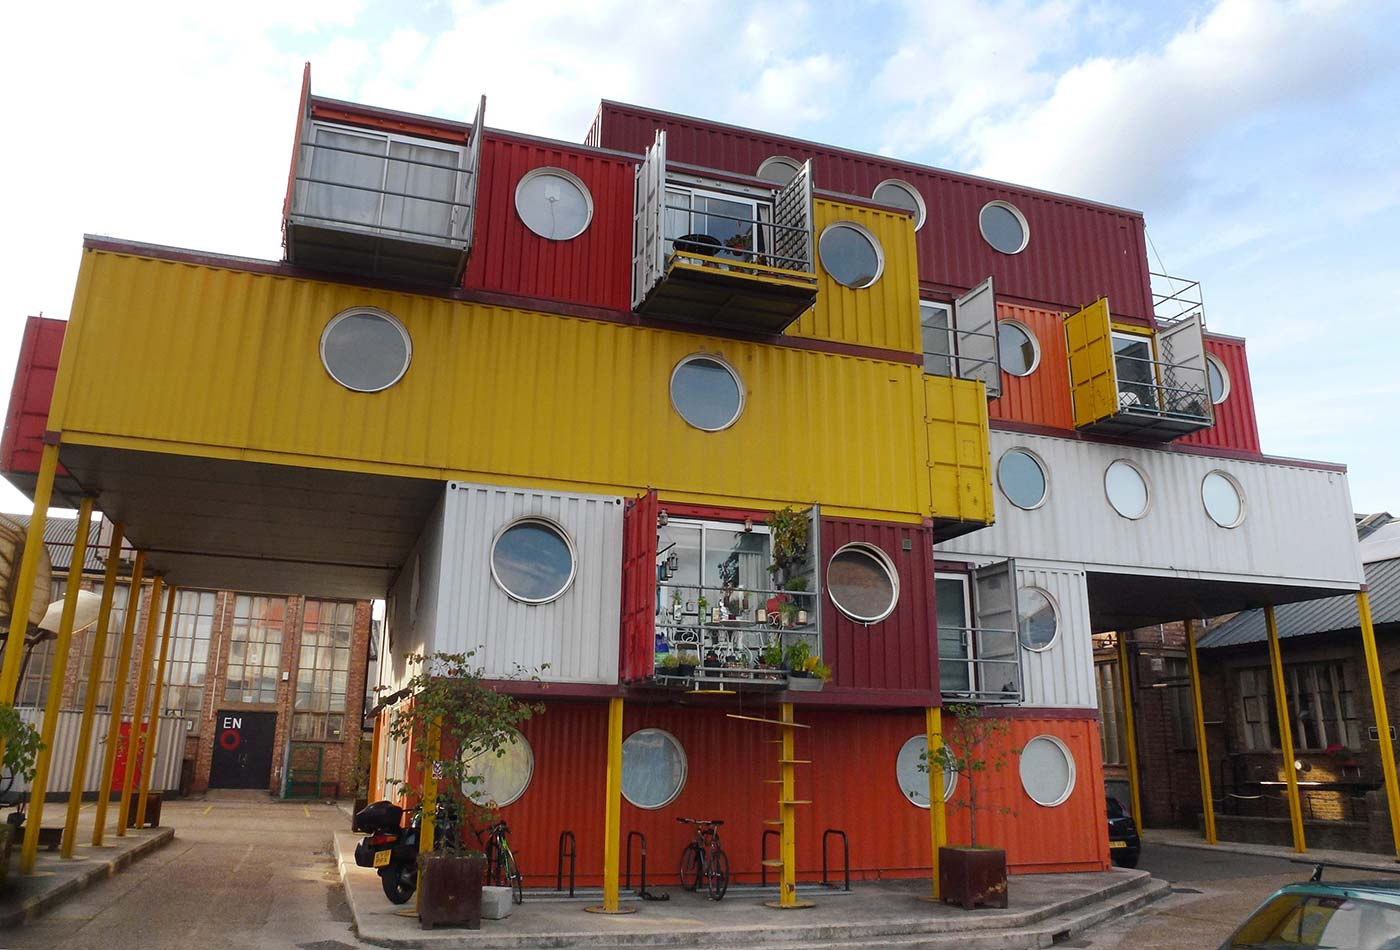 Container City 2 at Trinity Buoy Wharf, London in September 2012.